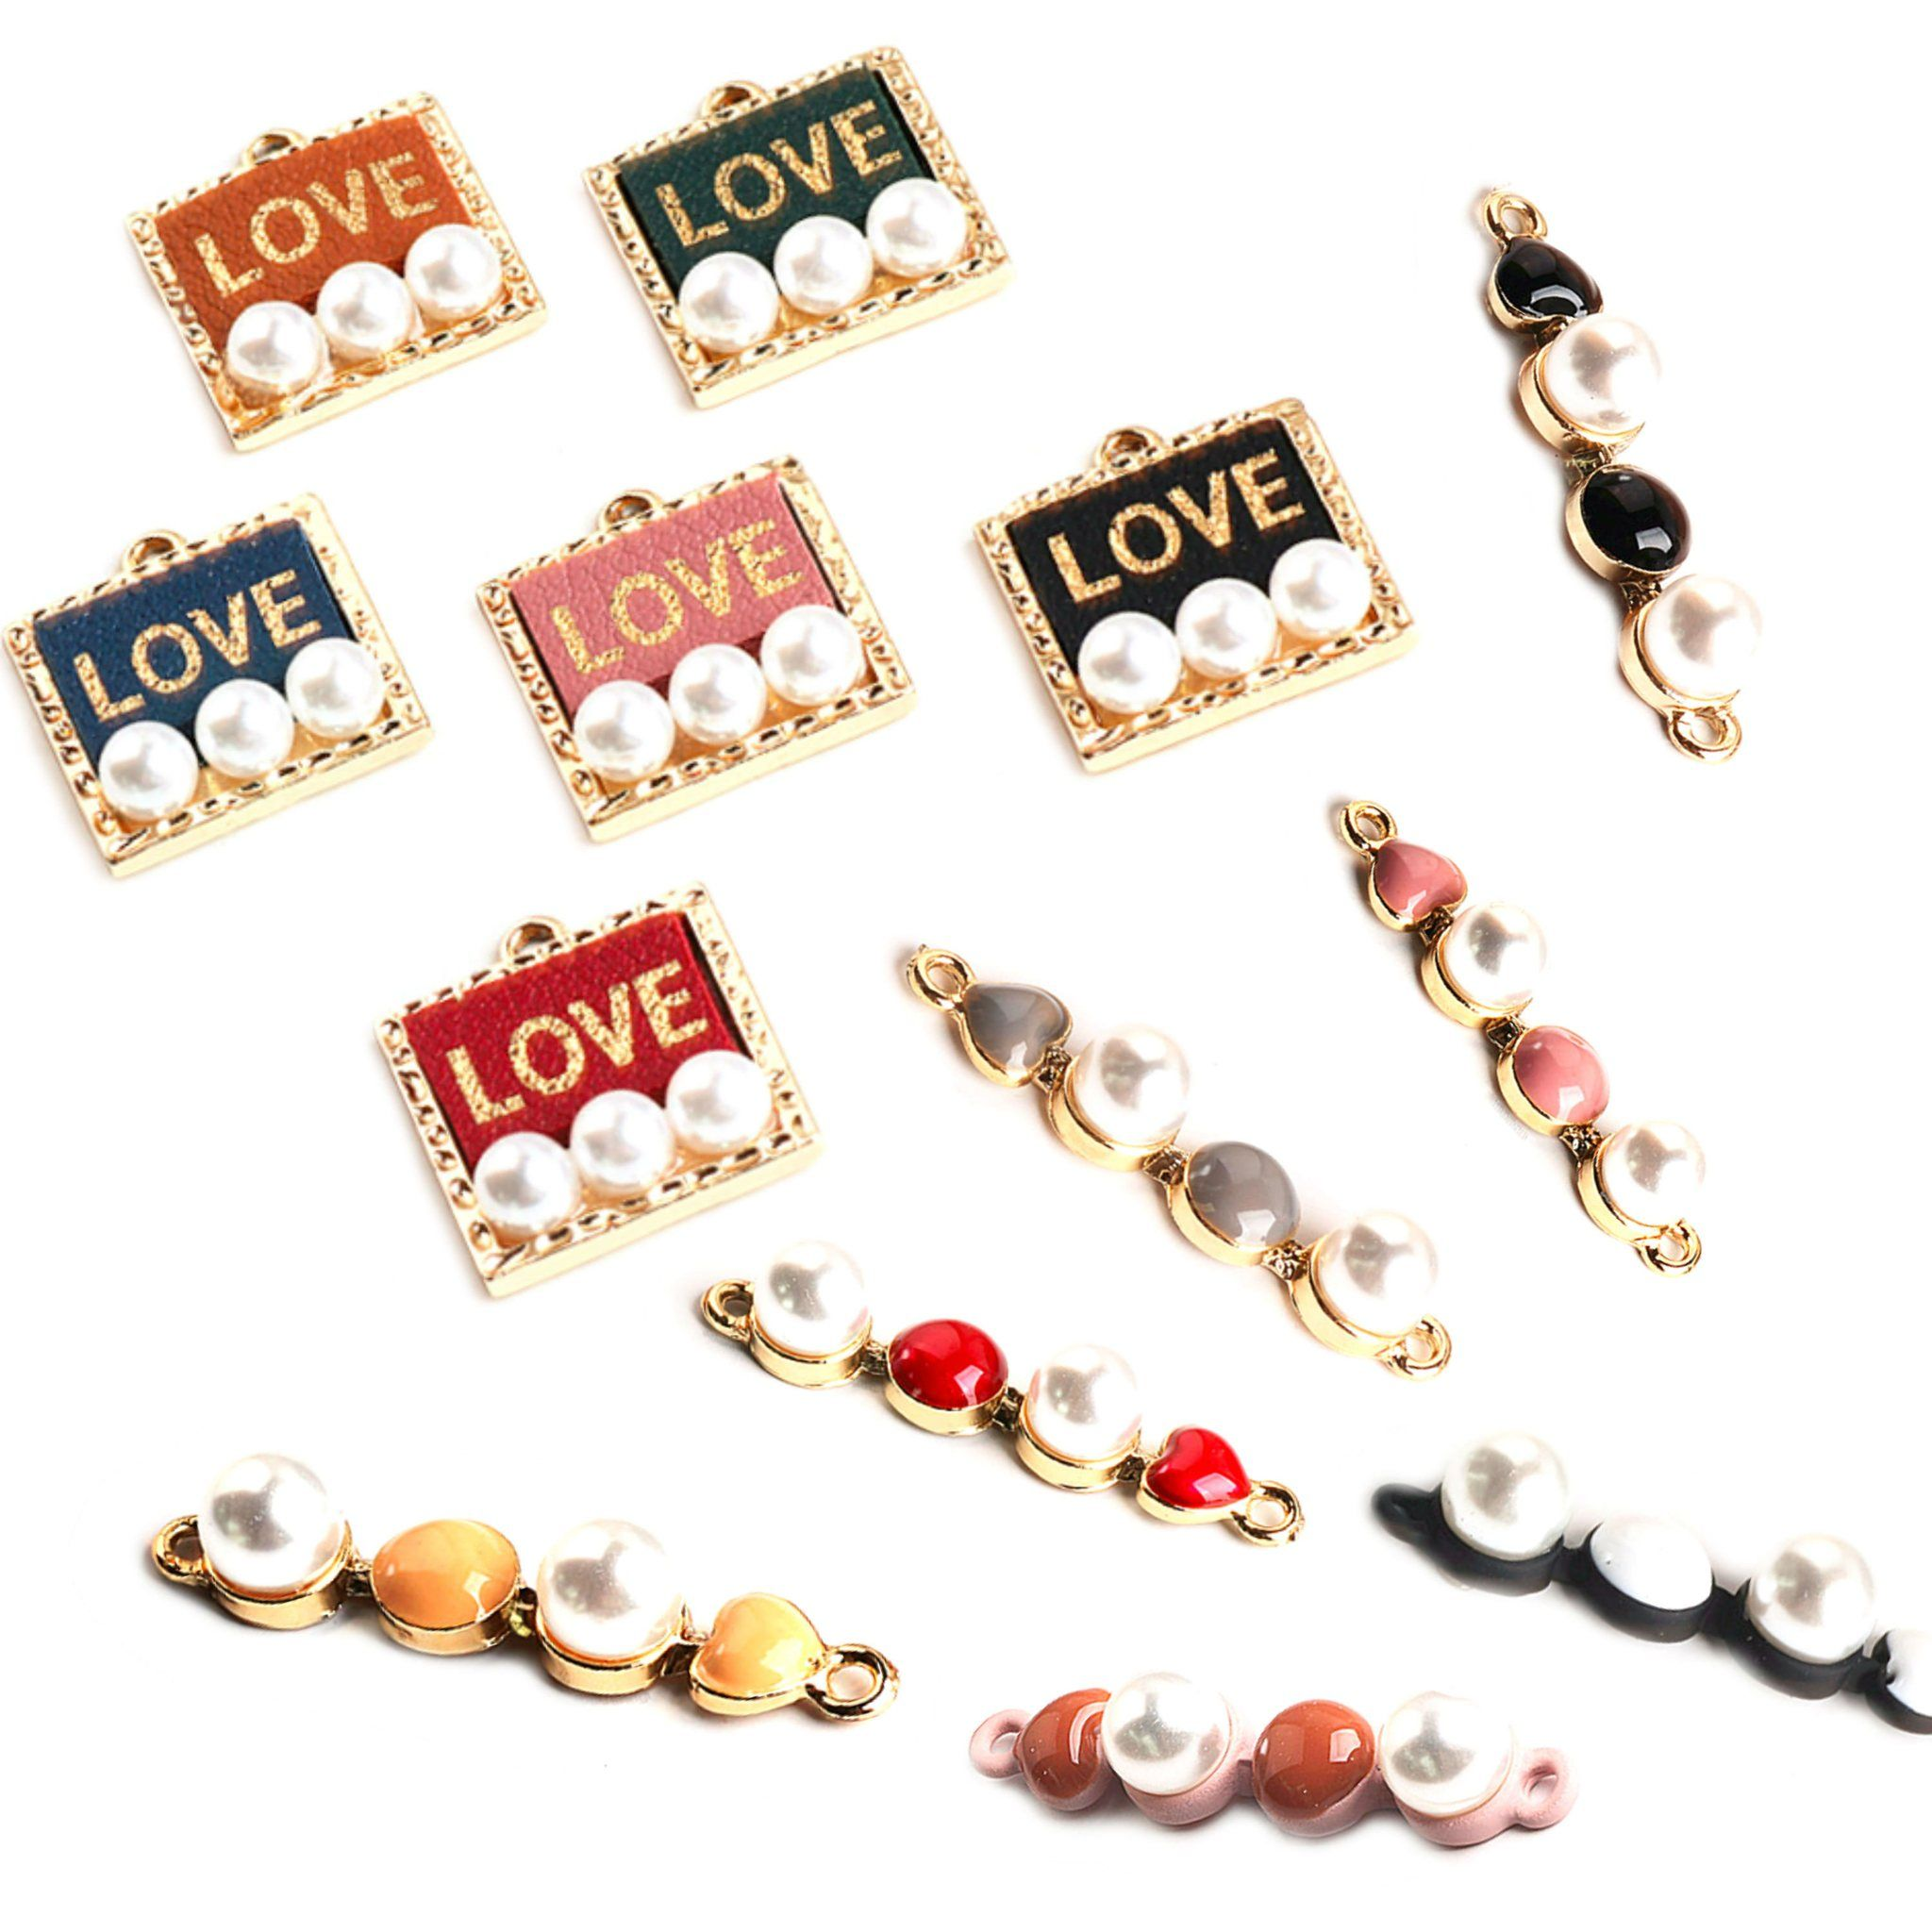 Charms for Earrings Love Connector Pendants stud Earring Making